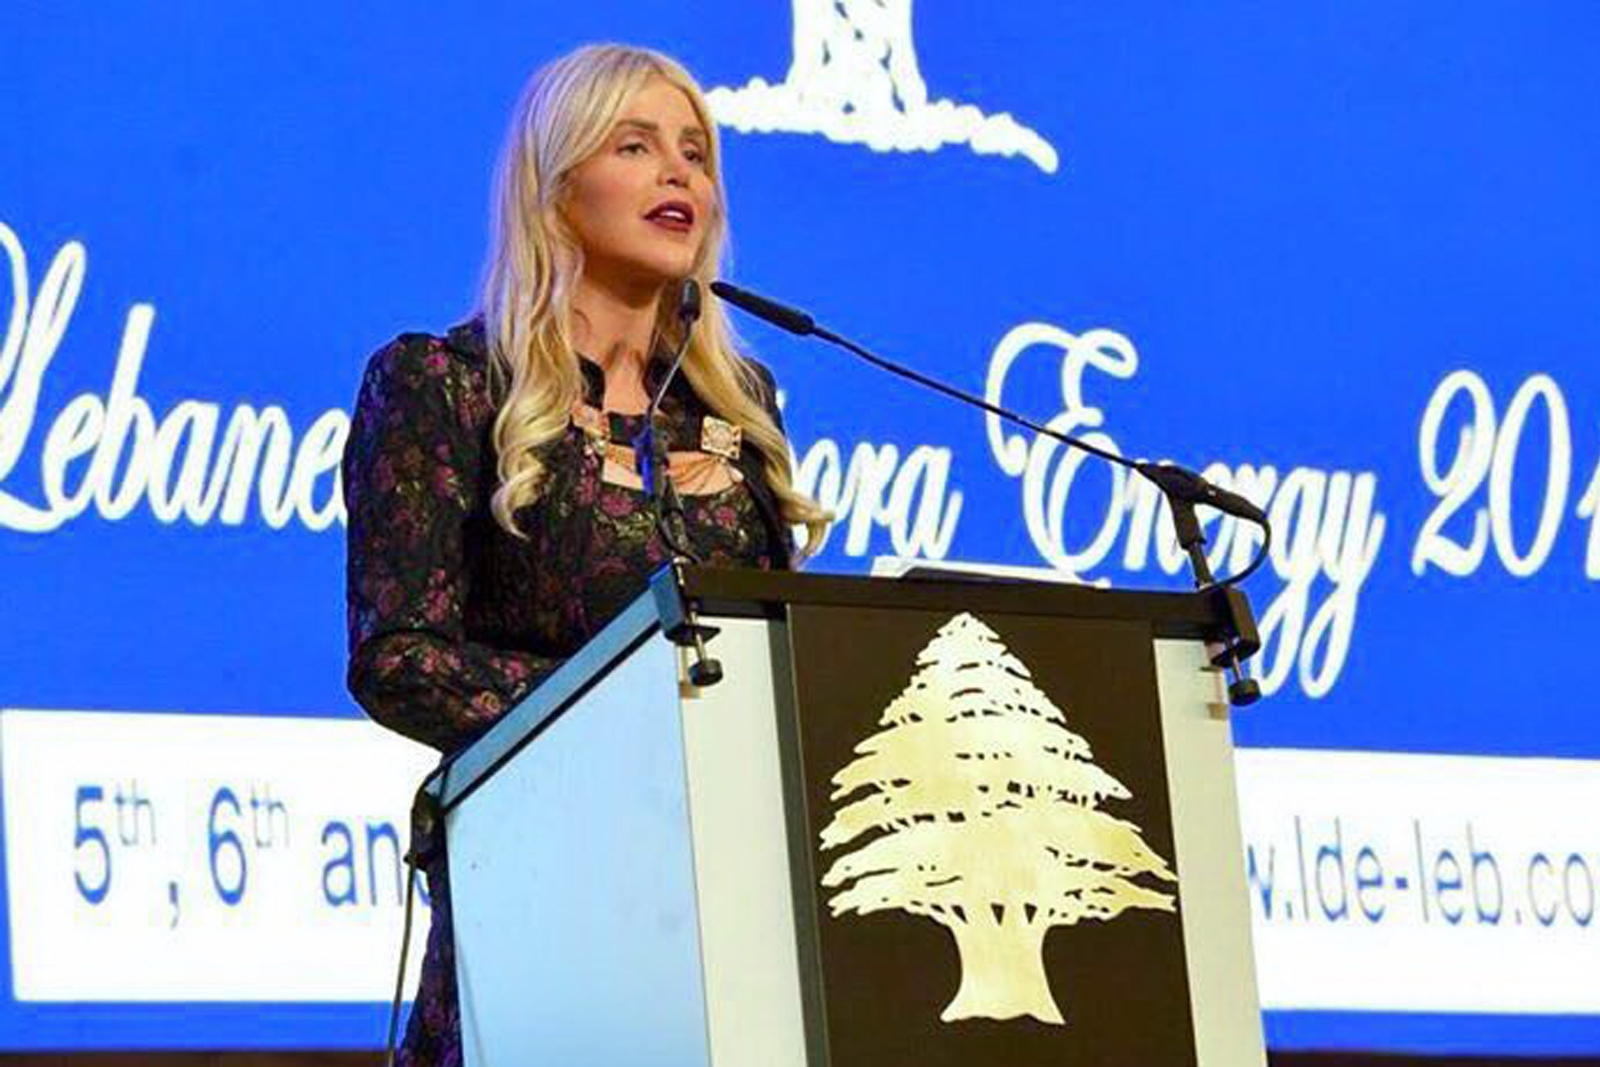 "Prominent Michigan Accident Attorney Joumana Kayrouz keynotes the opening day of the 3rd Annual Lebanese Diaspora Energy Conference in Beirut, Lebanon on May 5, 2016, urging Lebanese Americans to support Lebanon ""with their hearts, their minds, their citizenship and their pocketbooks."" www.YourRights.com"